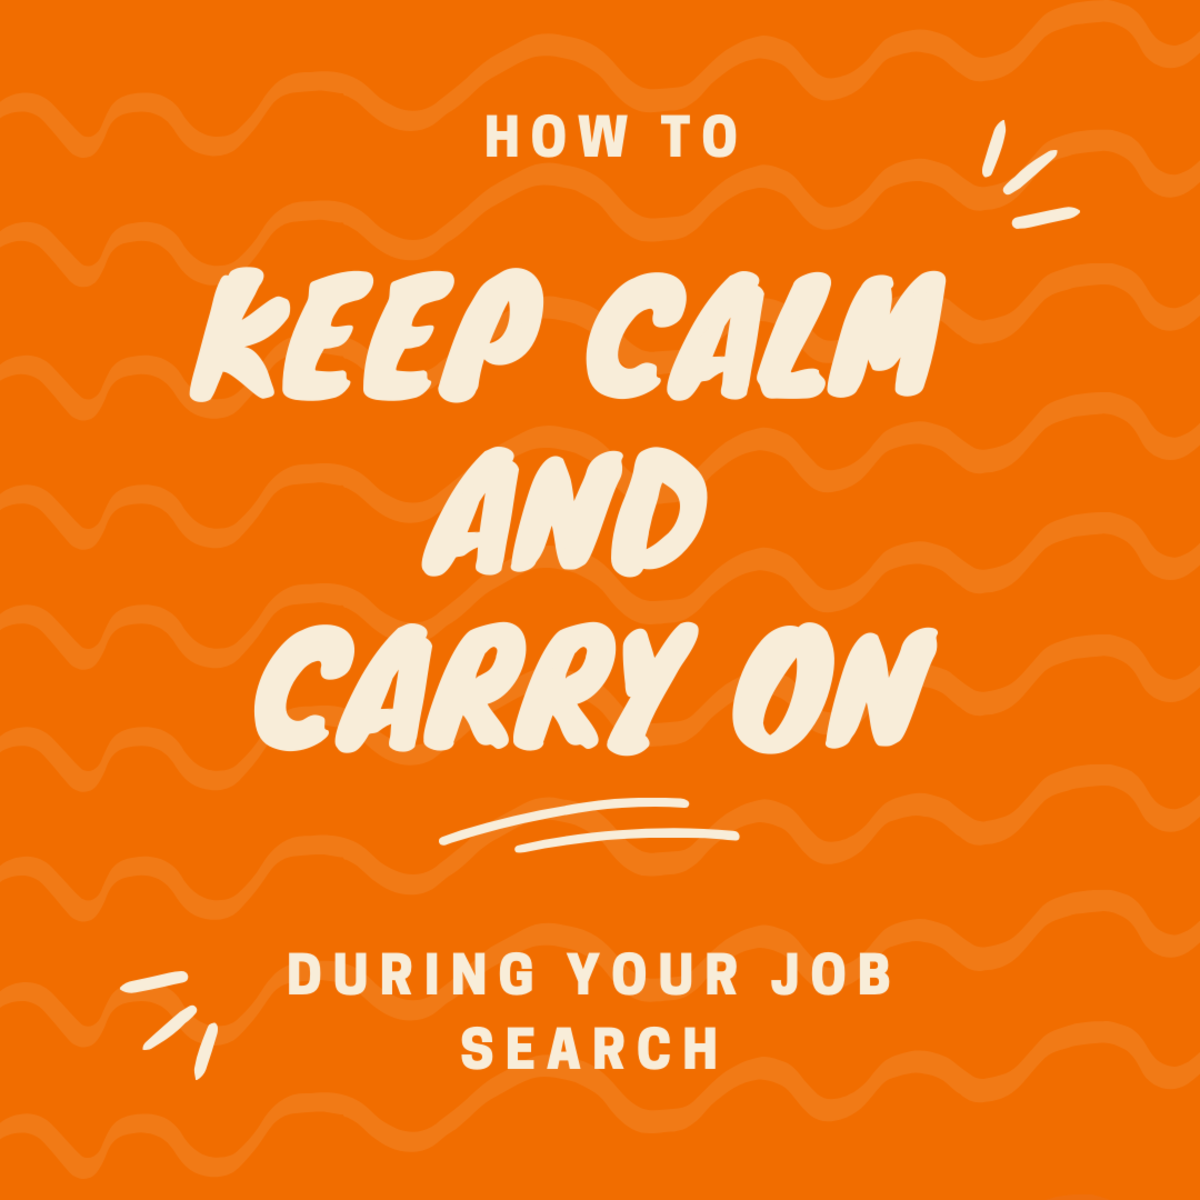 Job hunting can be stressful—here's how to keep calm and carry on.